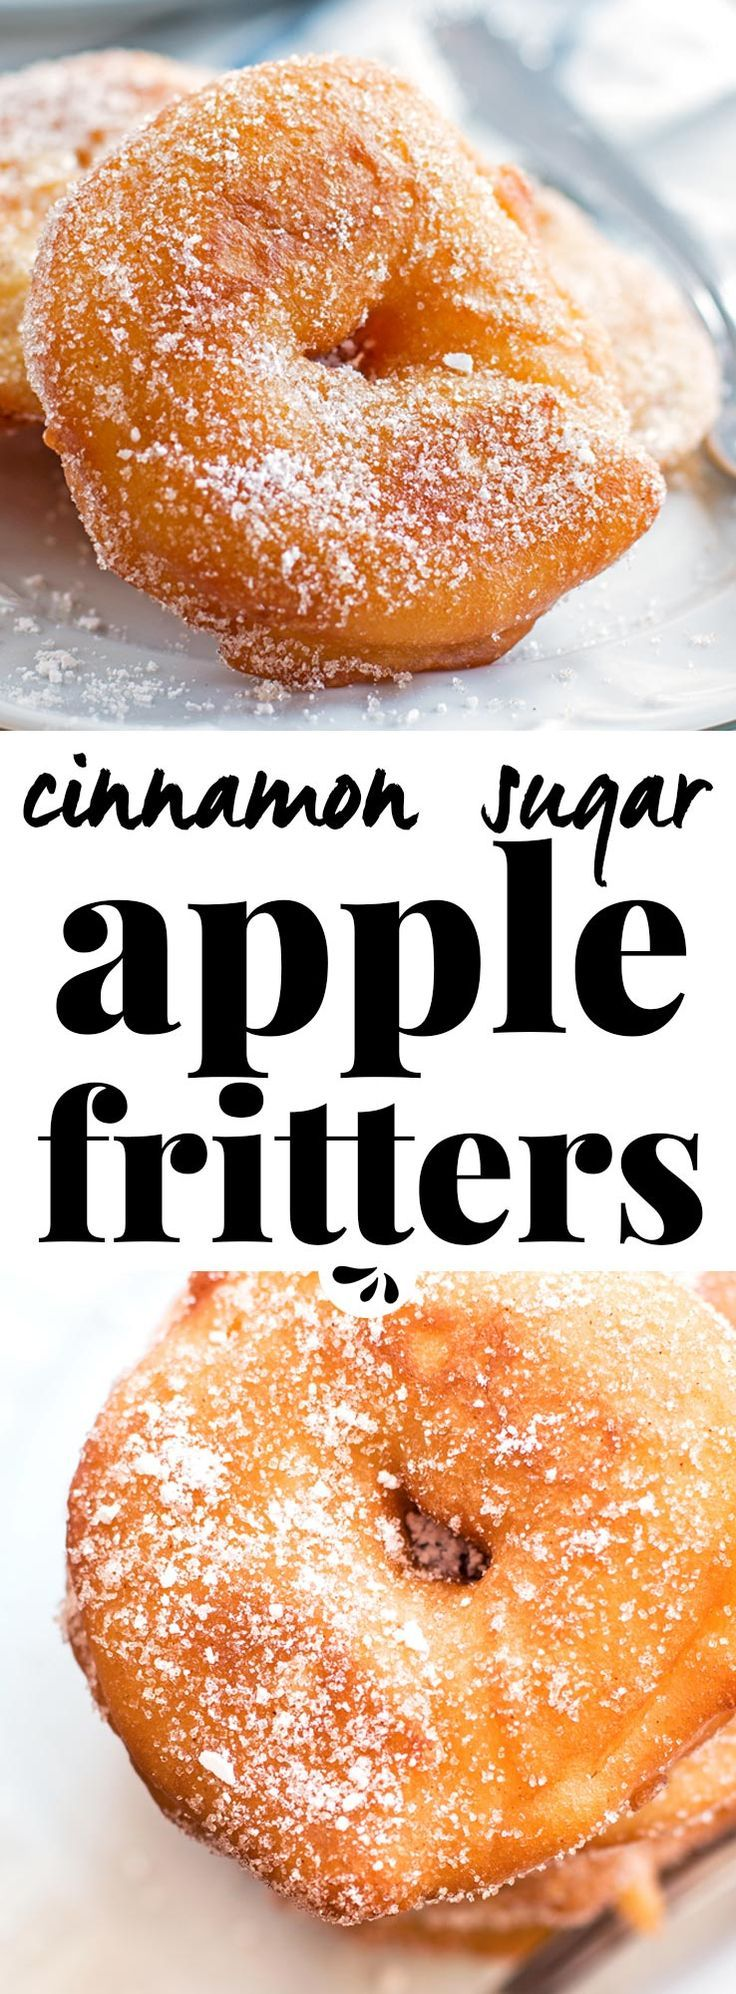 Are you looking for an easy apple fritter recipe? These are SO good! They look like fried apple donuts - the homemade batter turns out so crispy and makes your entire home smell of fall. It's the best German old fashioned treat for a golden autumn. Dip th